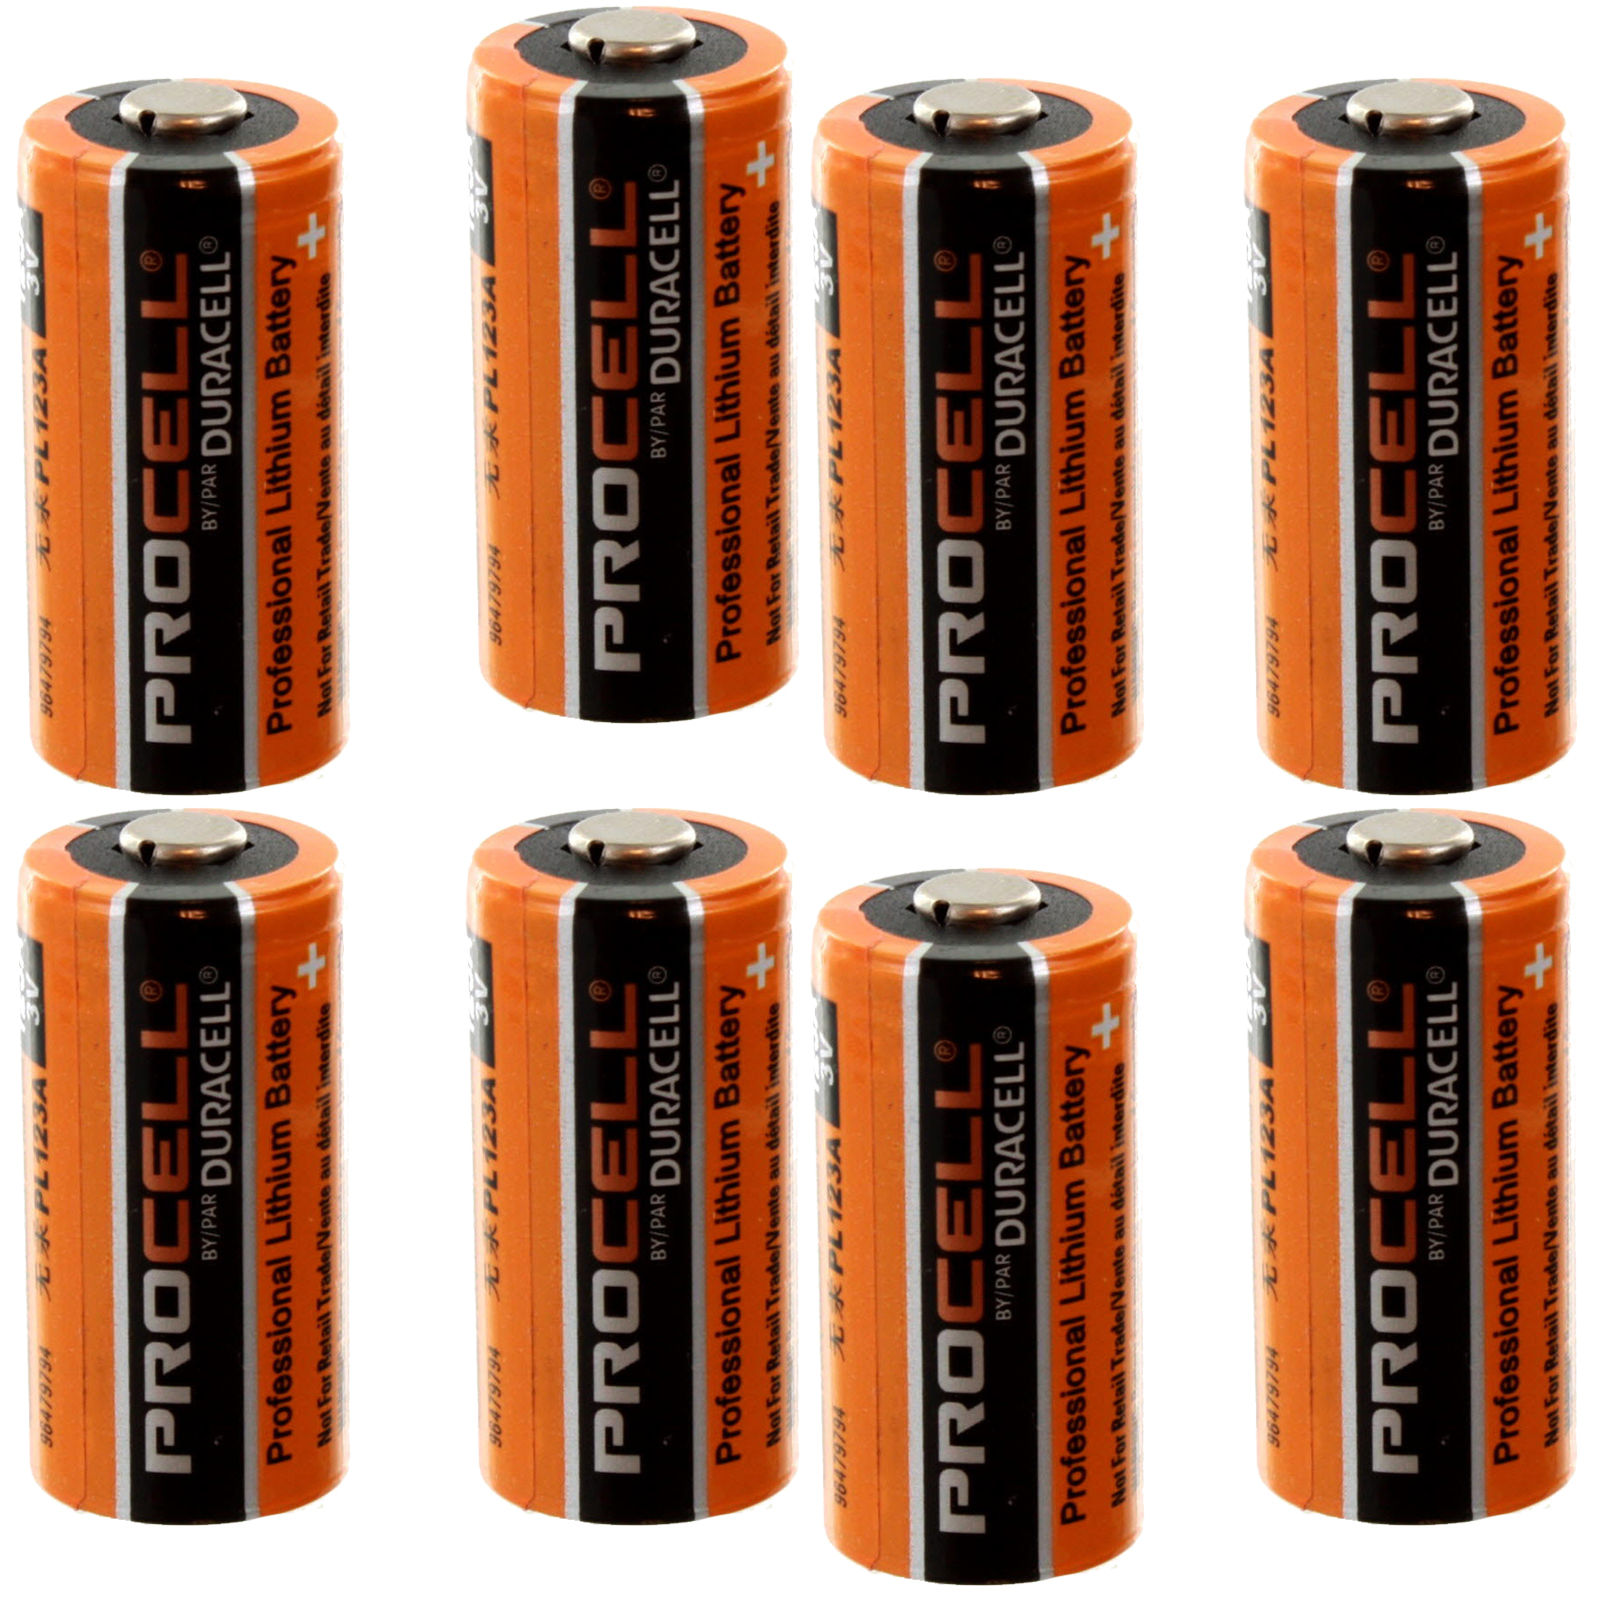 8x Duracell PROCELL DL123, CR123 3V Lithium Battery MADE IN USA FAST USA SHIP